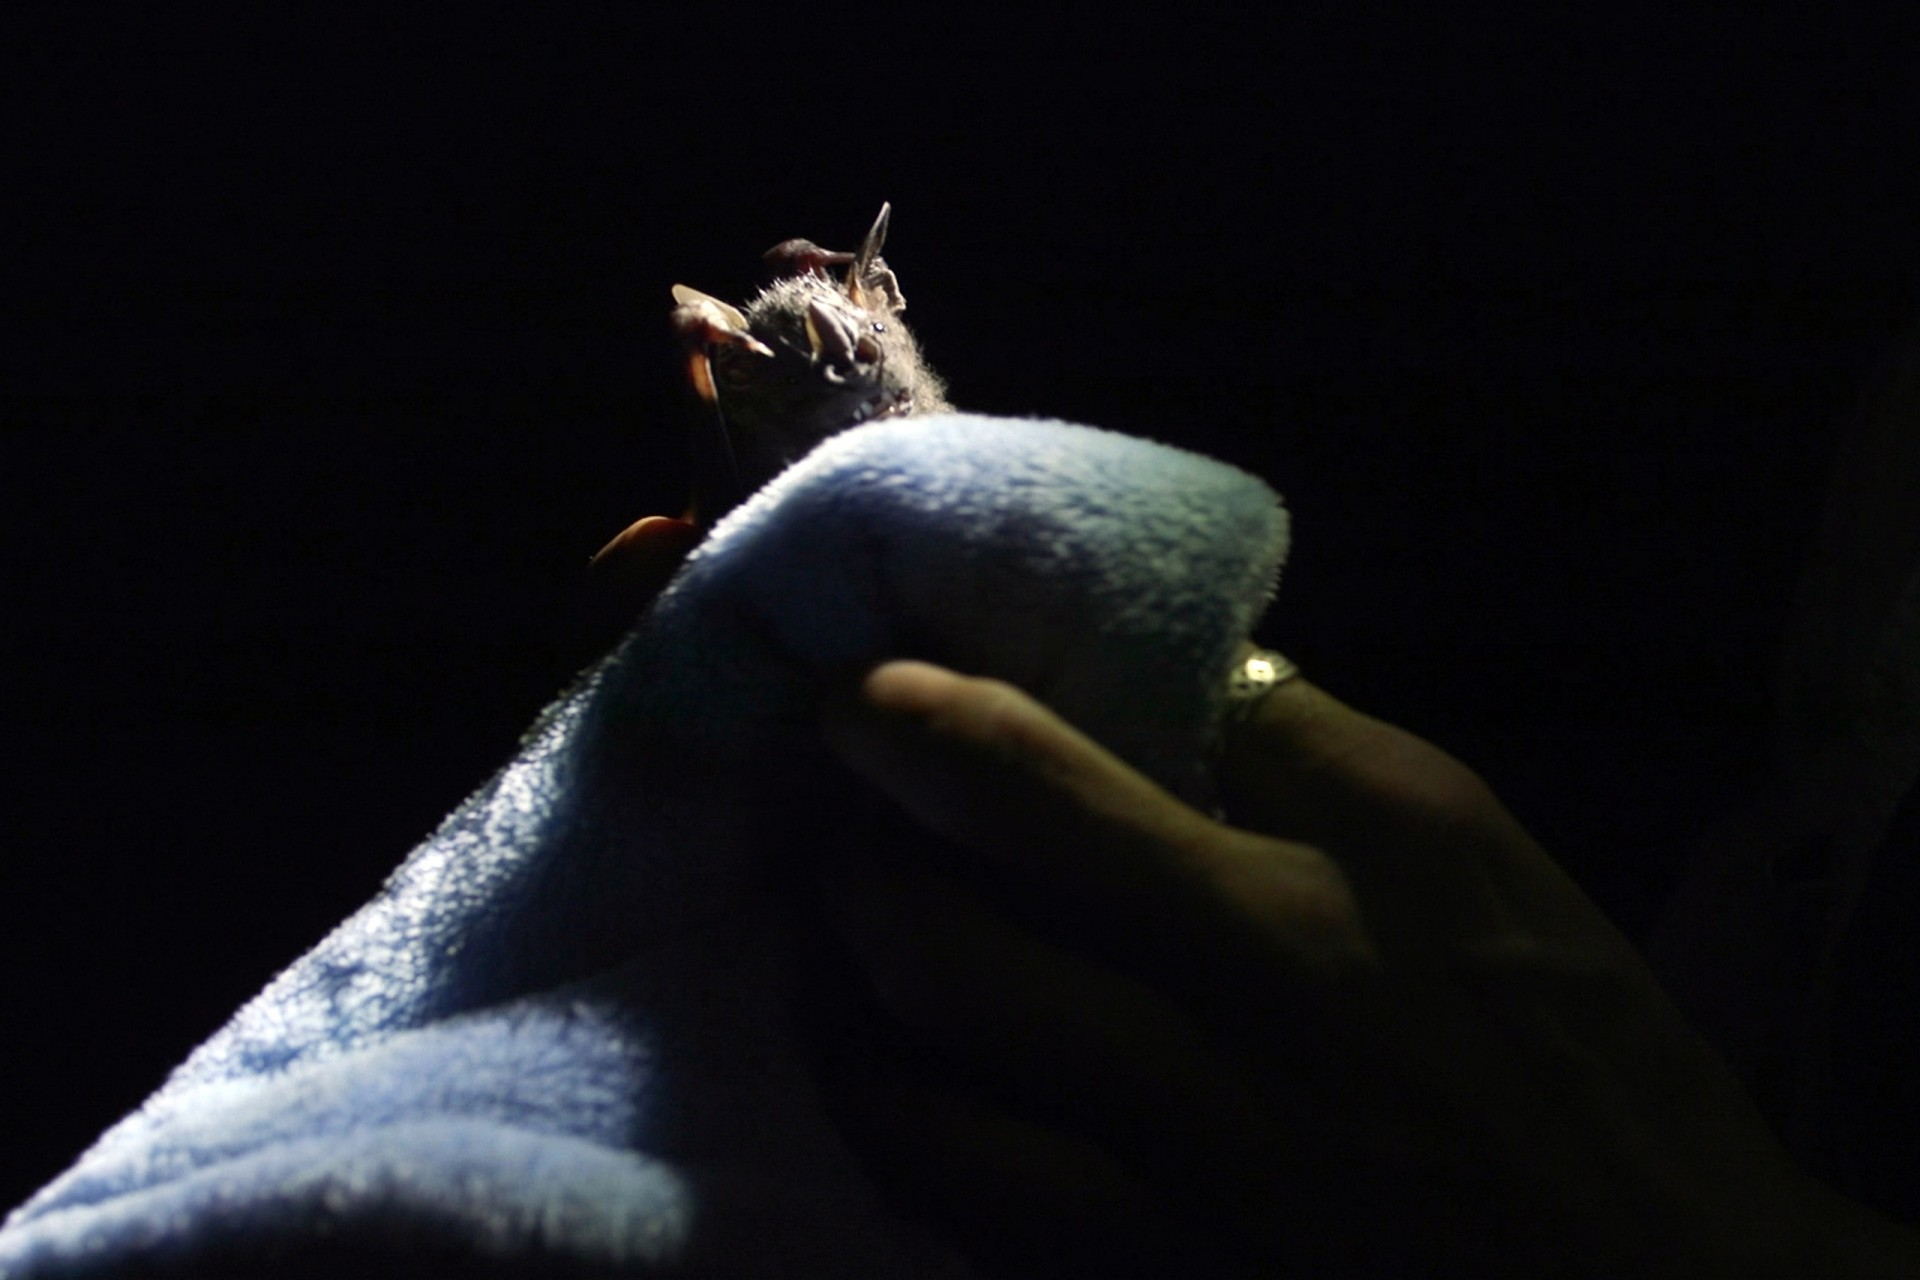 Are bats spying on their prey in the canopy?